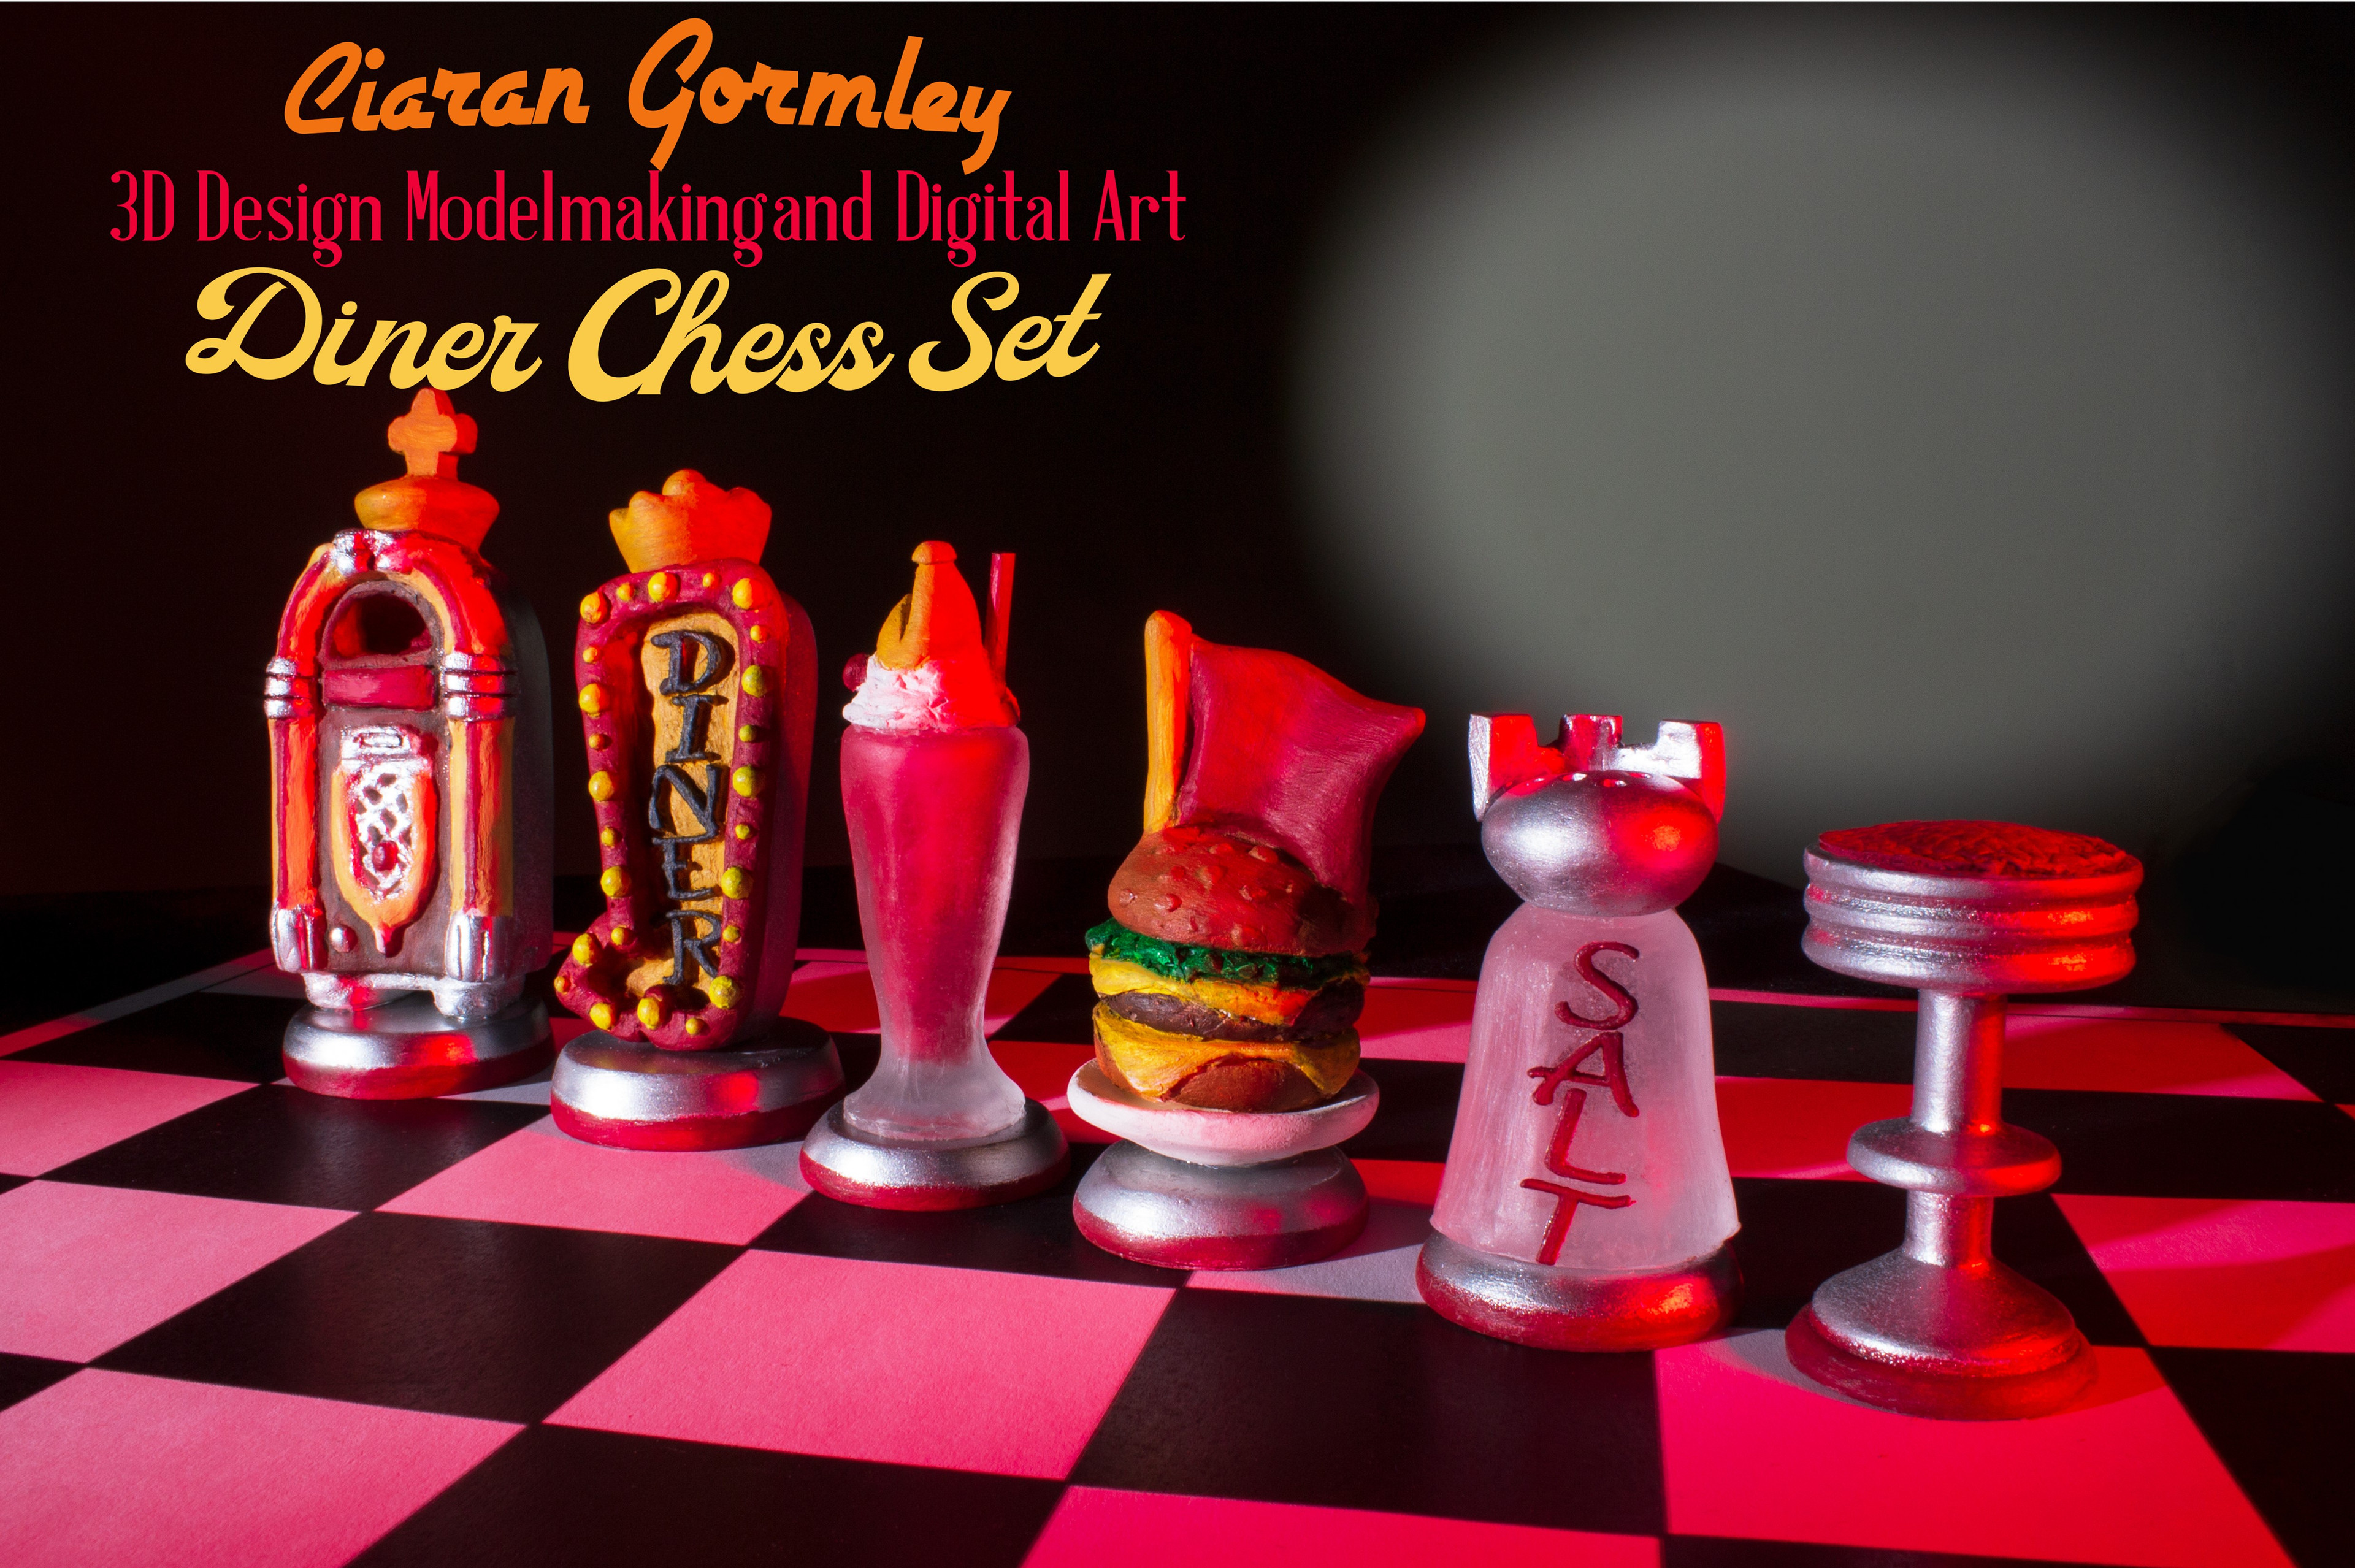 Staged Photo of Completed Chess Set